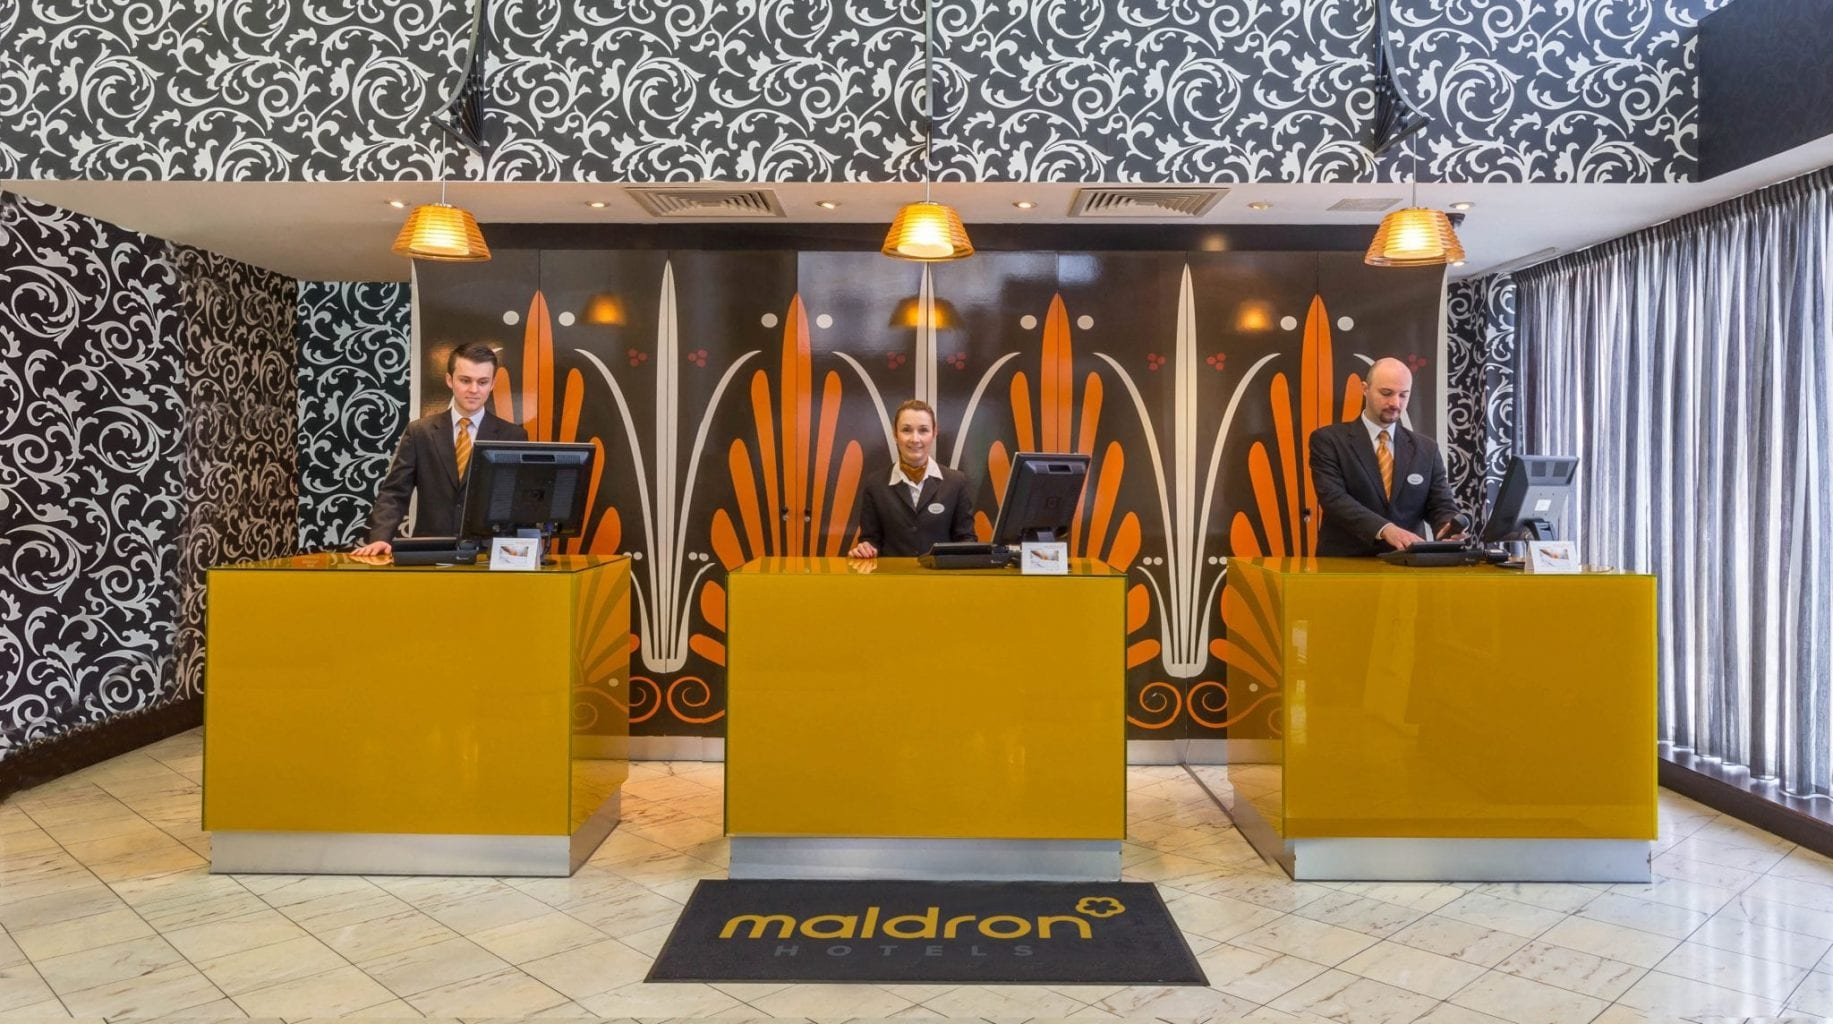 Friendly reception team look forward to welcoming you to Maldron Hotel Parnell Square Dublin